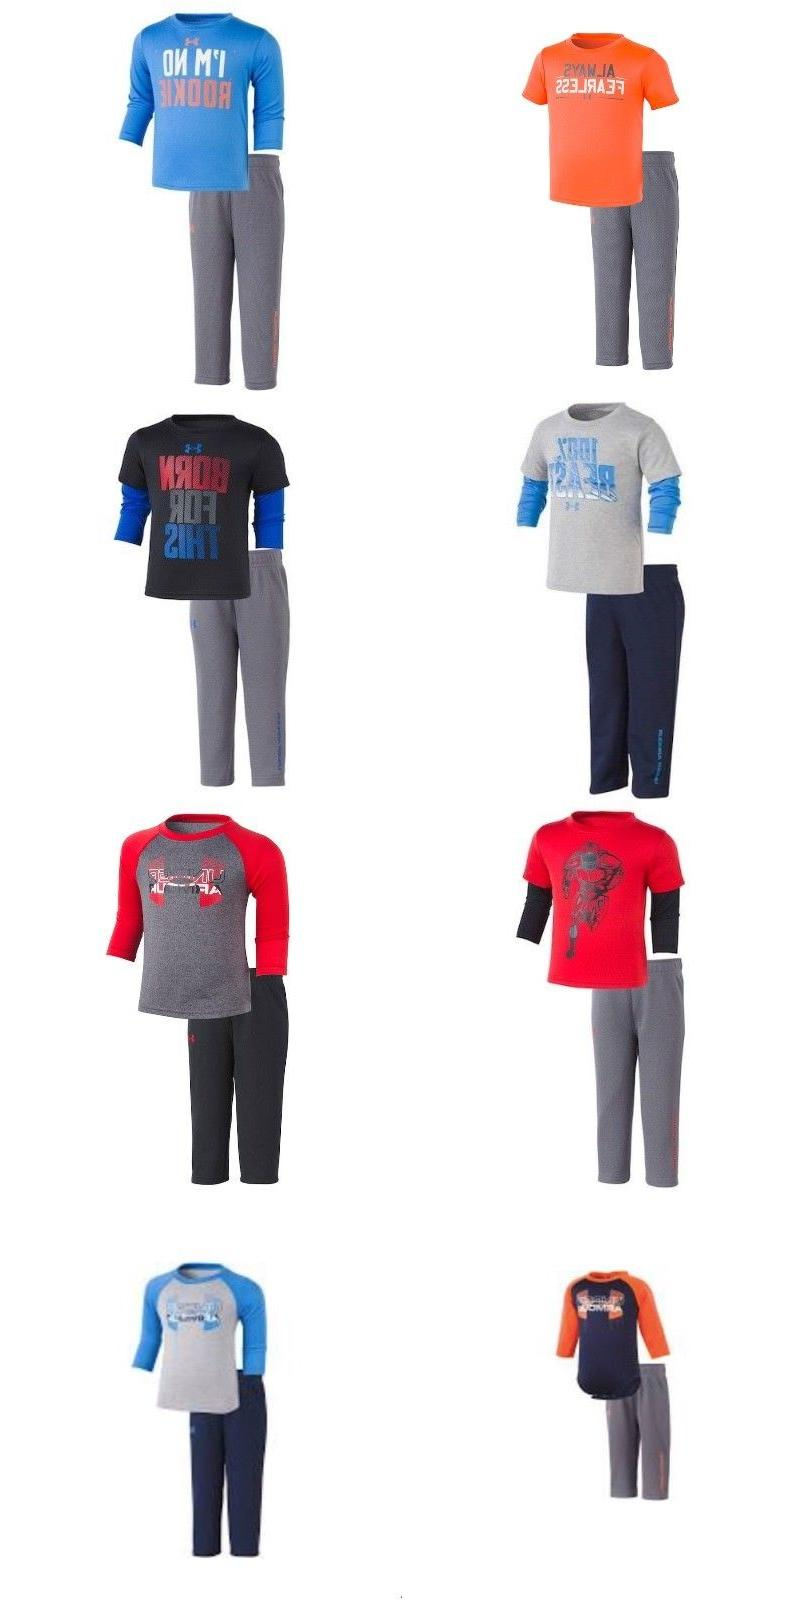 new baby boys tee and pants set